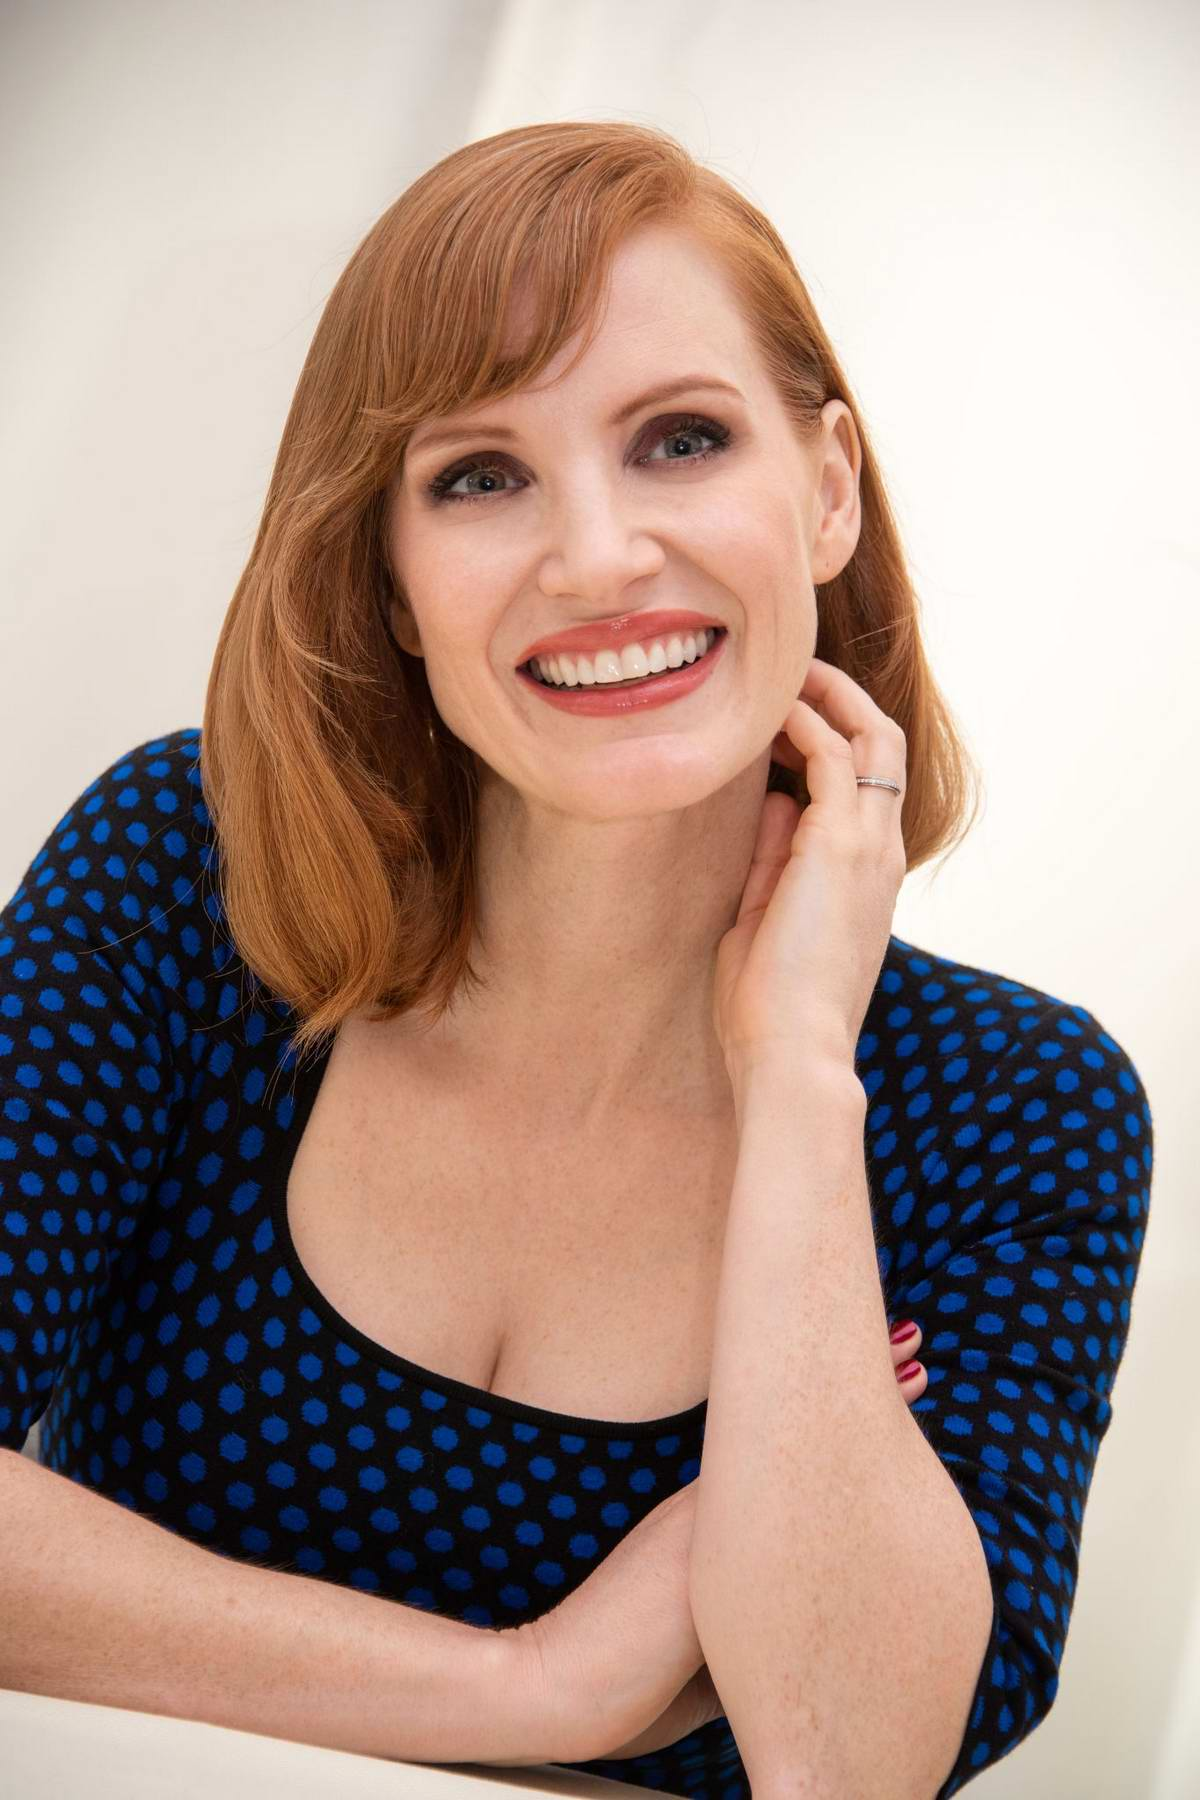 Jessica Chastain attends the 'X-Men: Dark Phoenix' Press Conference at the Mandarin Oriental Hotel in London, UK